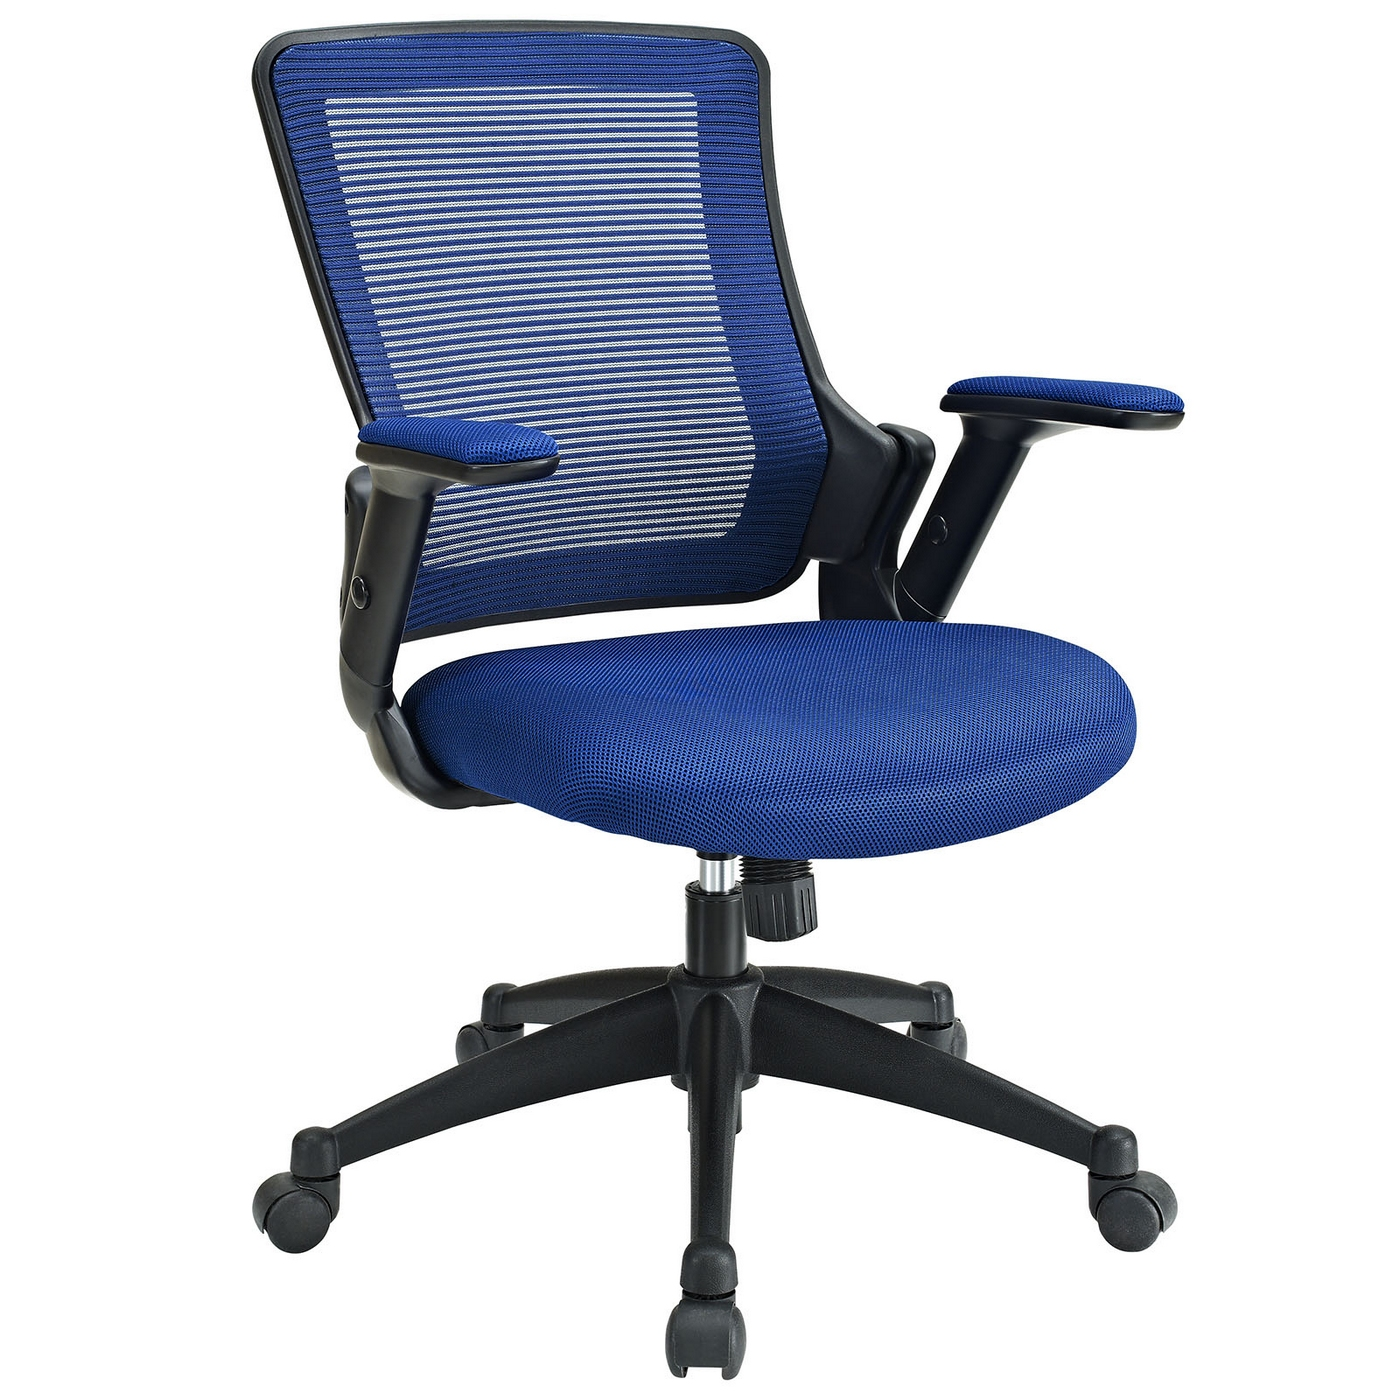 Blue Office Chair Aspire Contemporary Ergonomic Mesh Multi Function Office